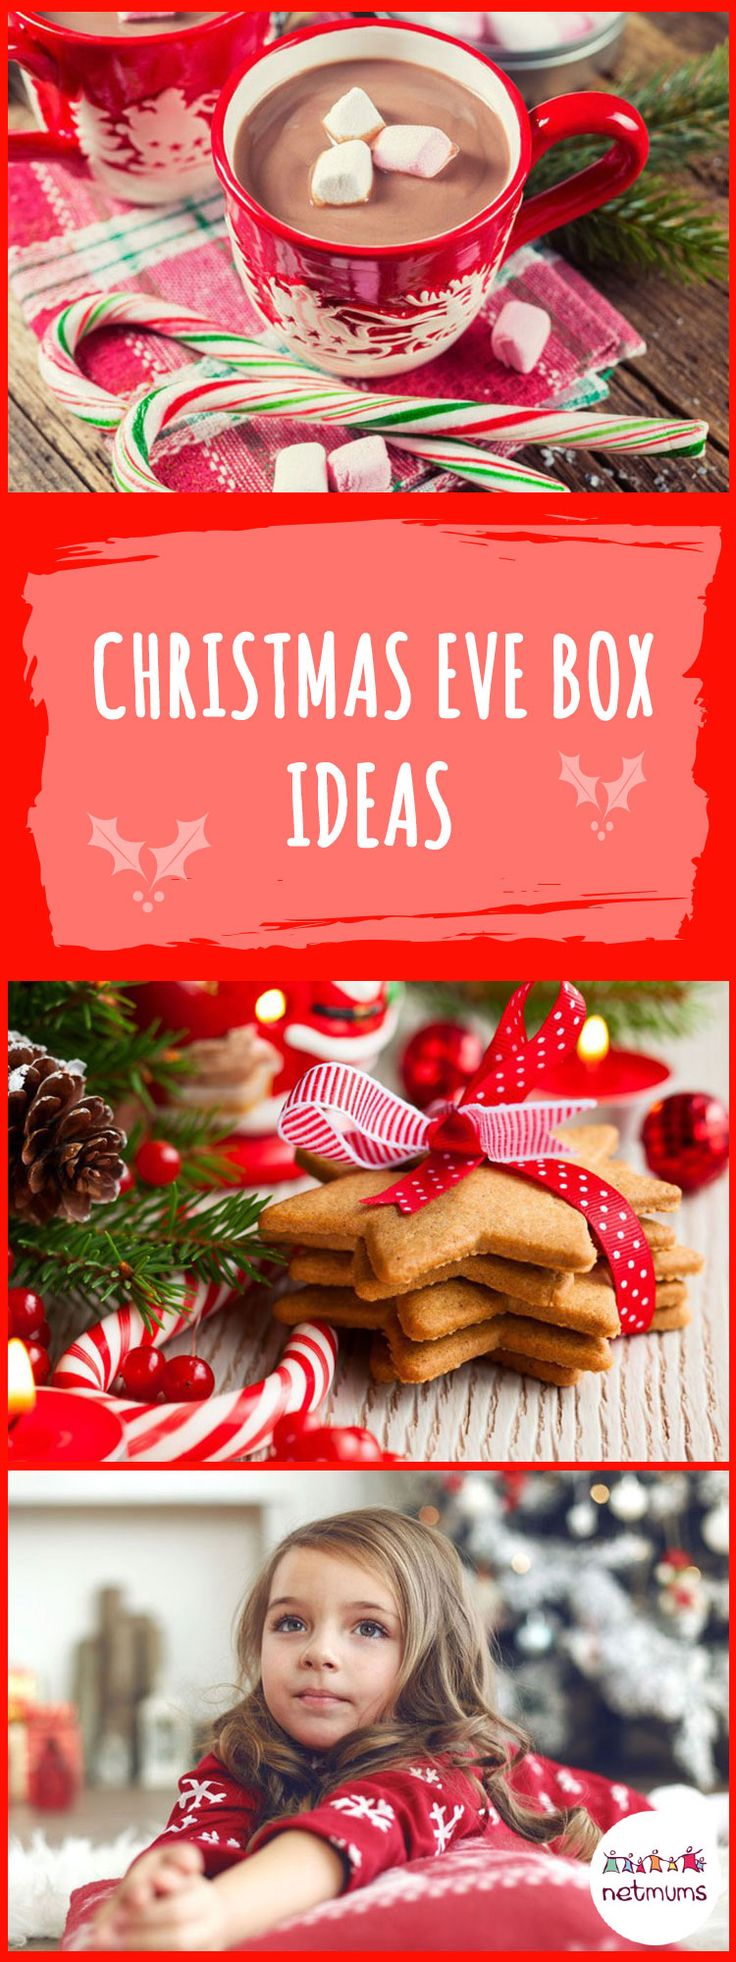 Bring a little extra magic and sparkle to Christmas Eve by packing a Christmas Eve box full of little treats. It'll make the night before Christmas almost as magical as the day itself.